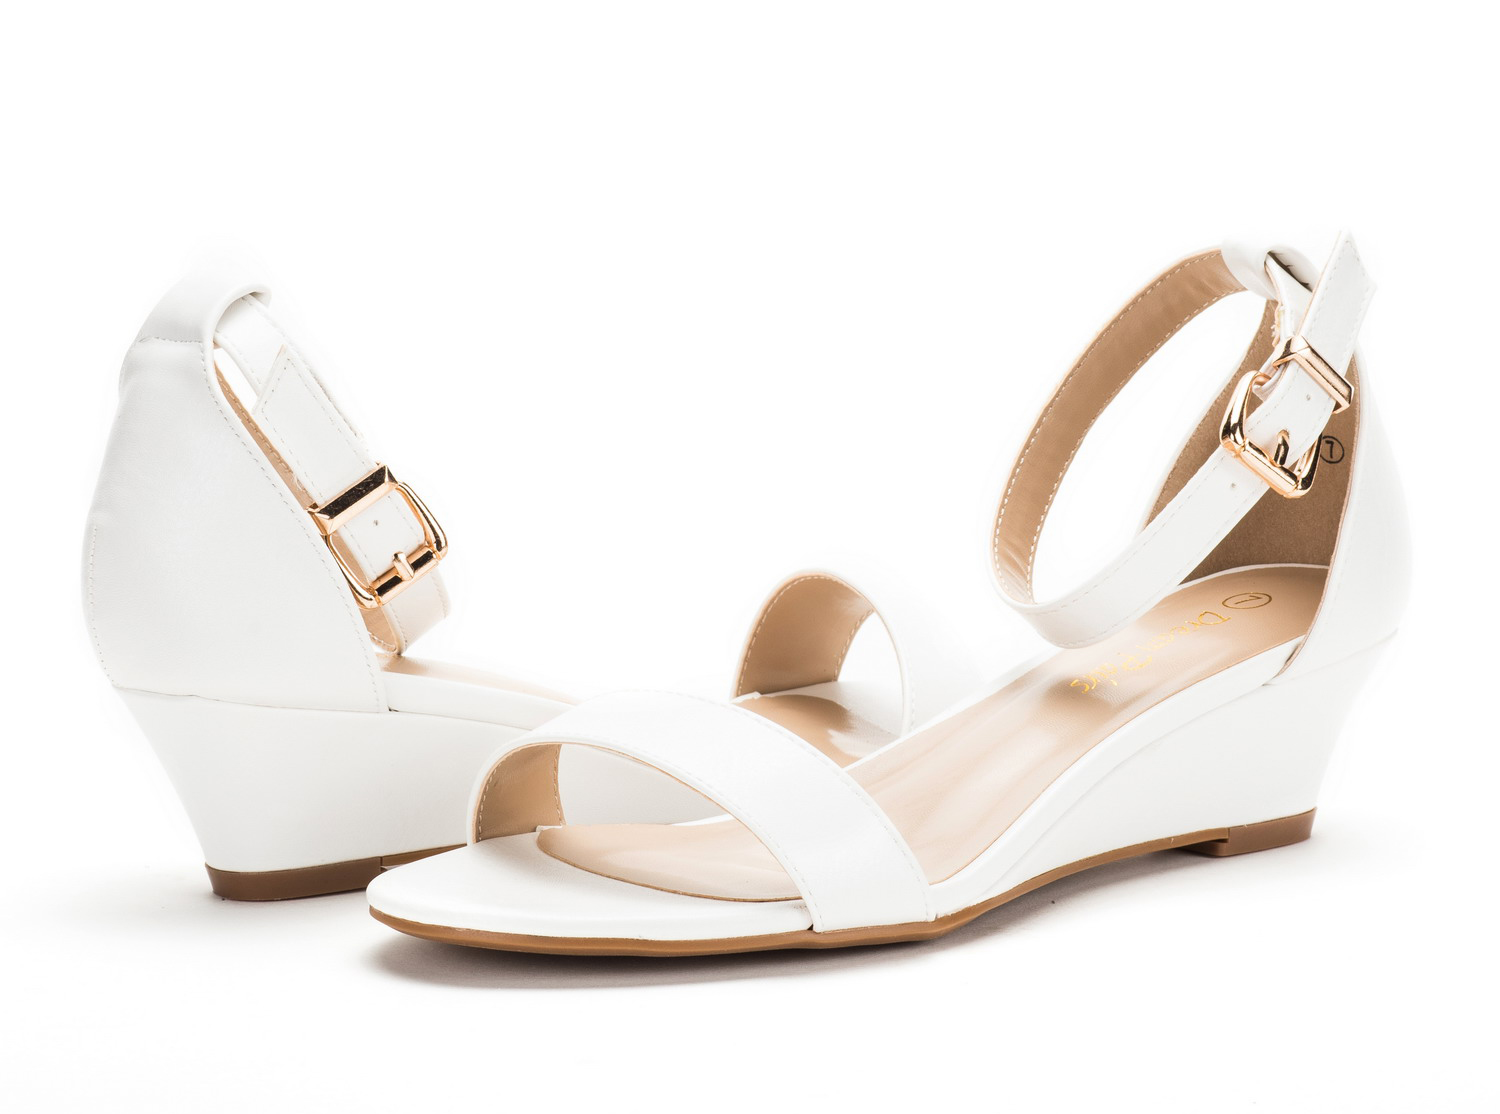 DREAM-PAIRS-Women-039-s-Ankle-Strap-Low-Wedge-Sandals-Open-Toe-Casual-Dress-Shoes thumbnail 22